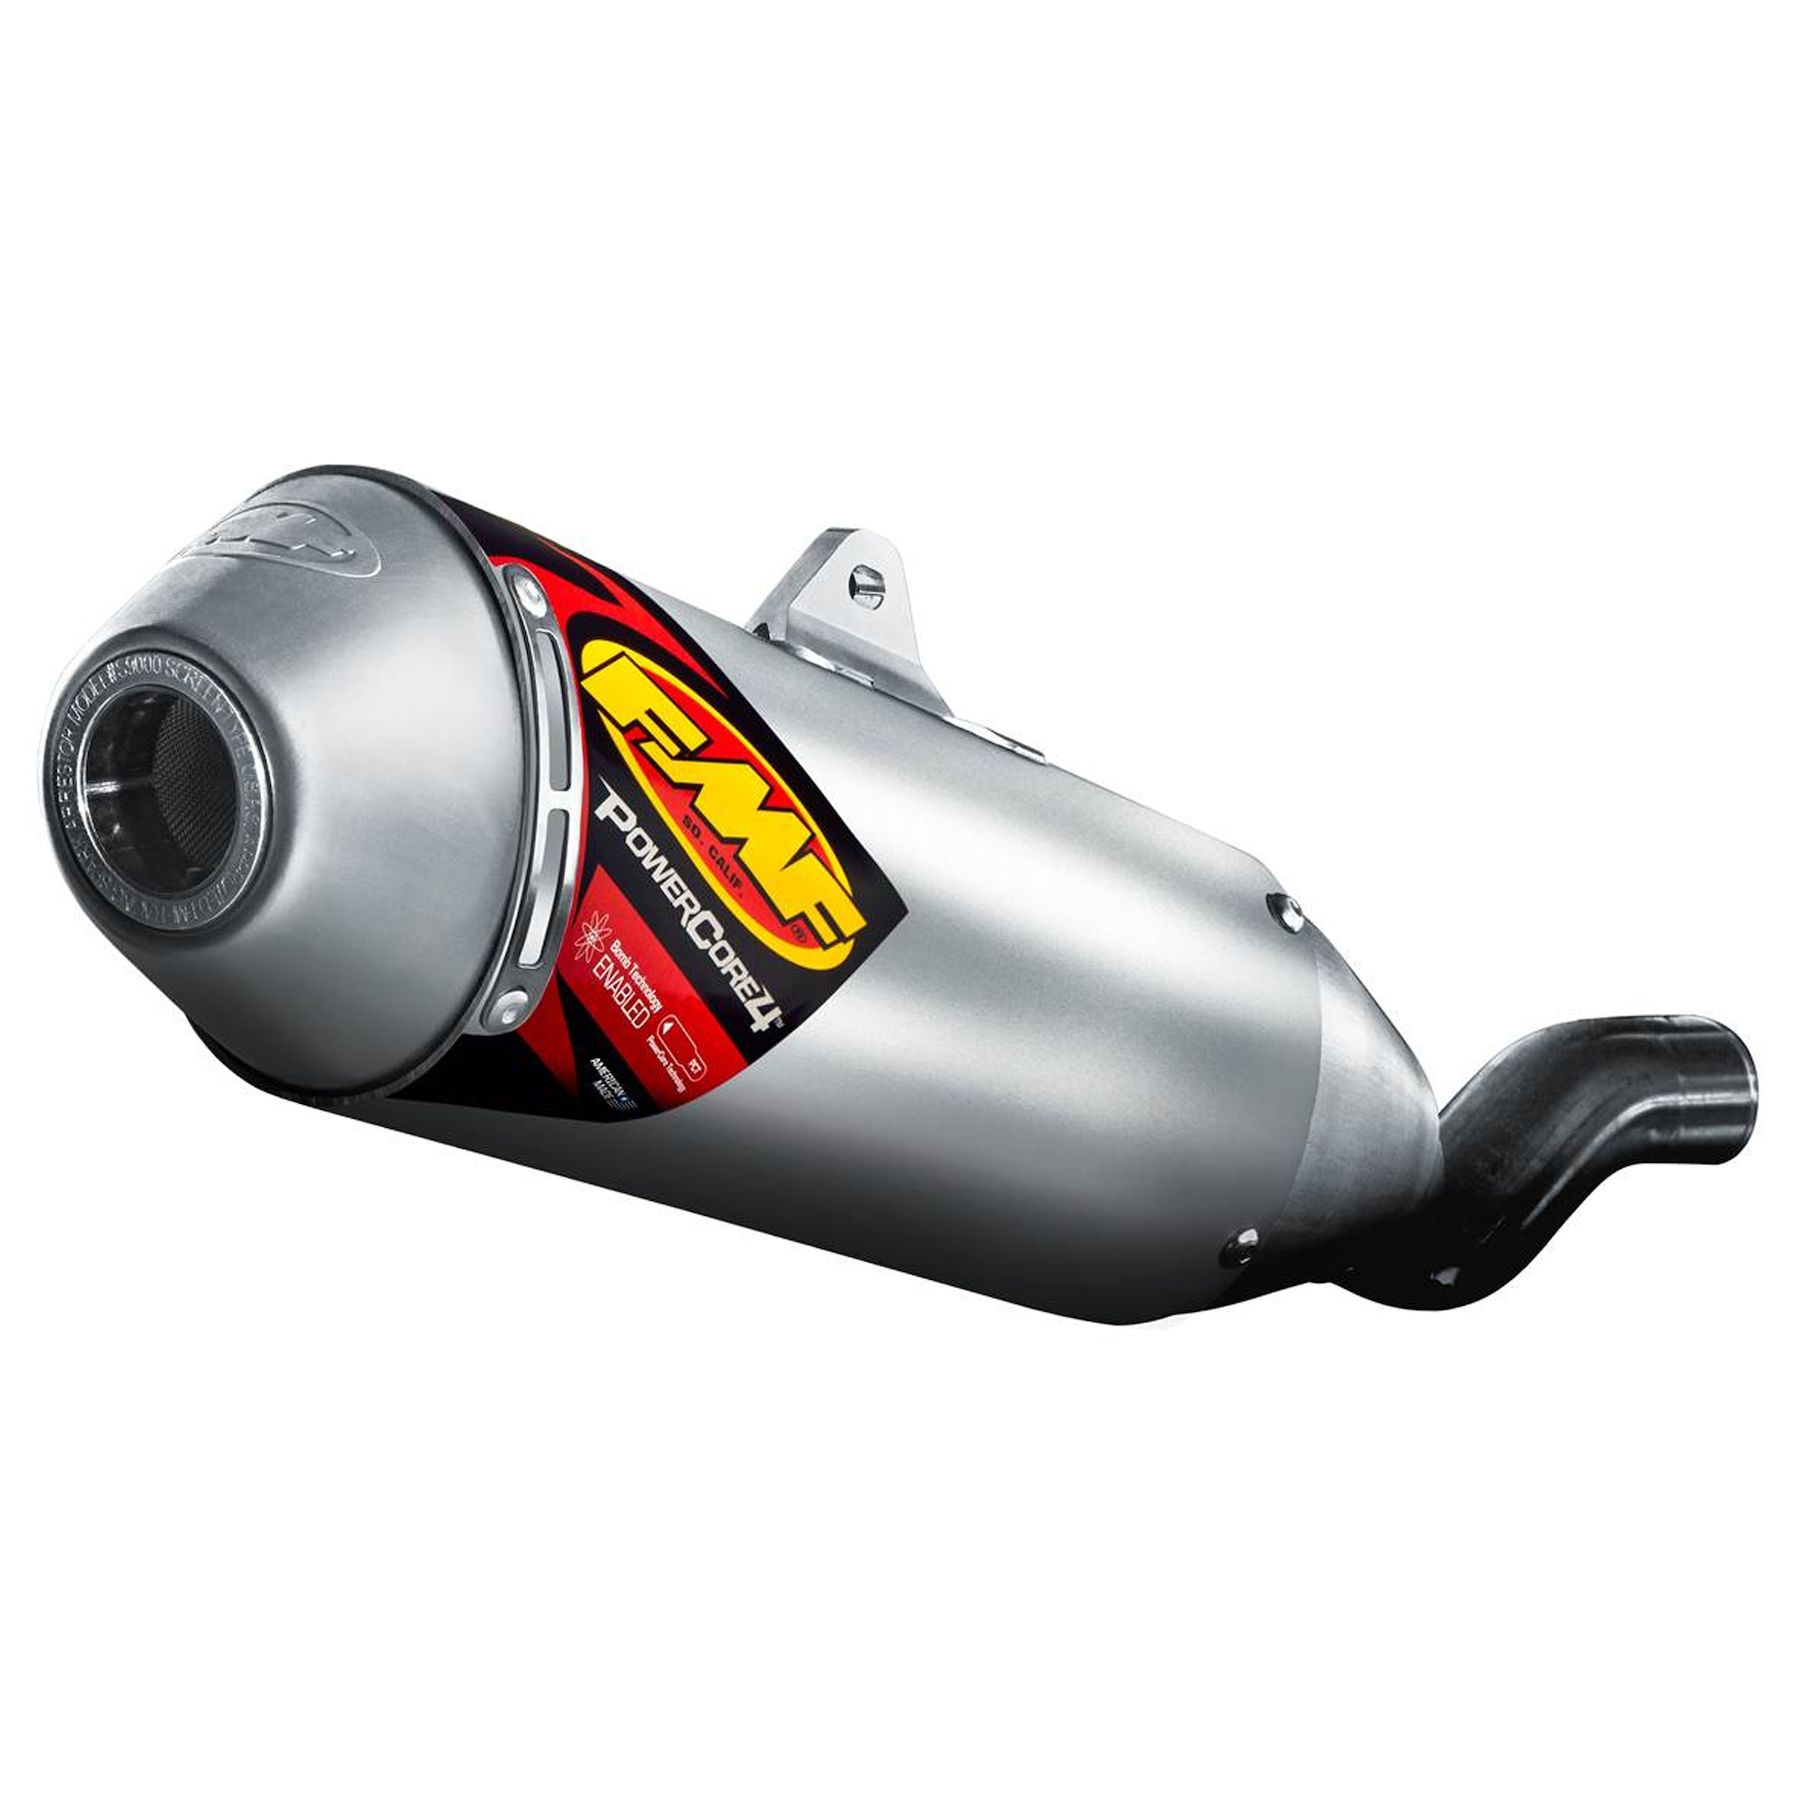 Stainless Exhaust Head Pipe Header FOR Yamaha WR450F 2003-2006 06